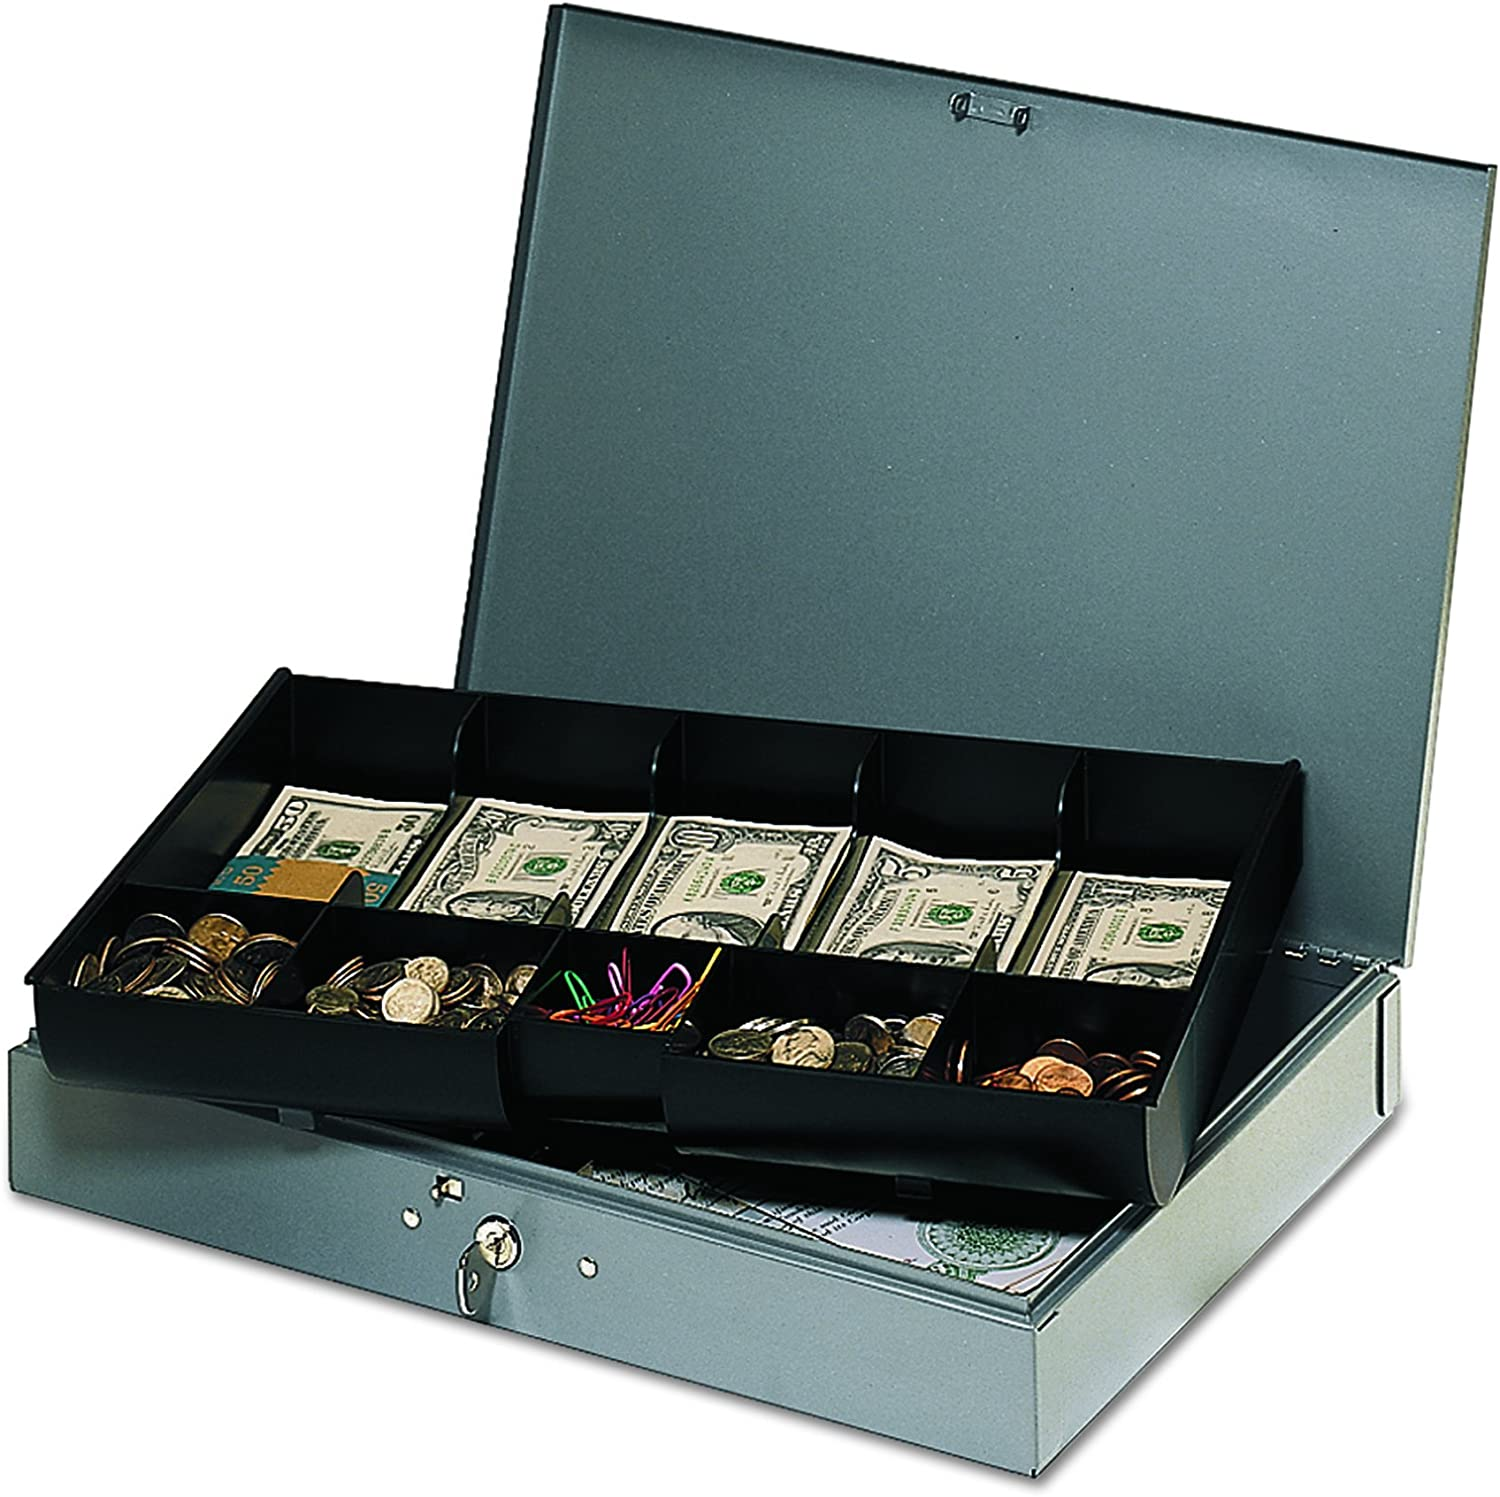 STEELMASTER Low Profile Super Omaha Mall beauty product restock quality top Steel Cash Box with Gra 10 Compartments